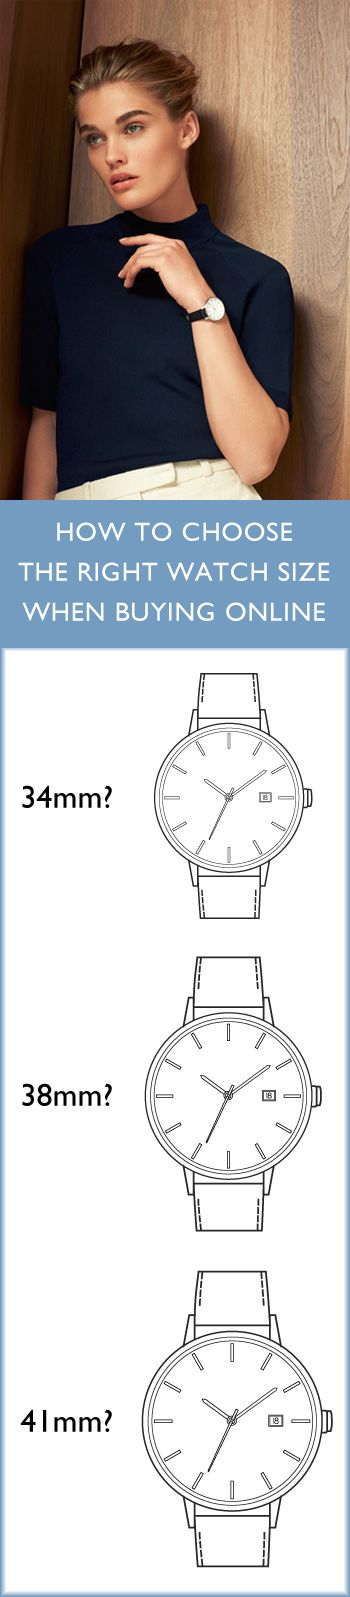 Still haven't found the perfect size for your wrist? Here's what we suggest for Linjer watches for women   34mm: feminine and elegantly proportioned, for women with small and medium wrists   38mm: perfect for women with larger wrists   41mm: for women who want an oversized watch face   Our watches come in all three of these sizes.